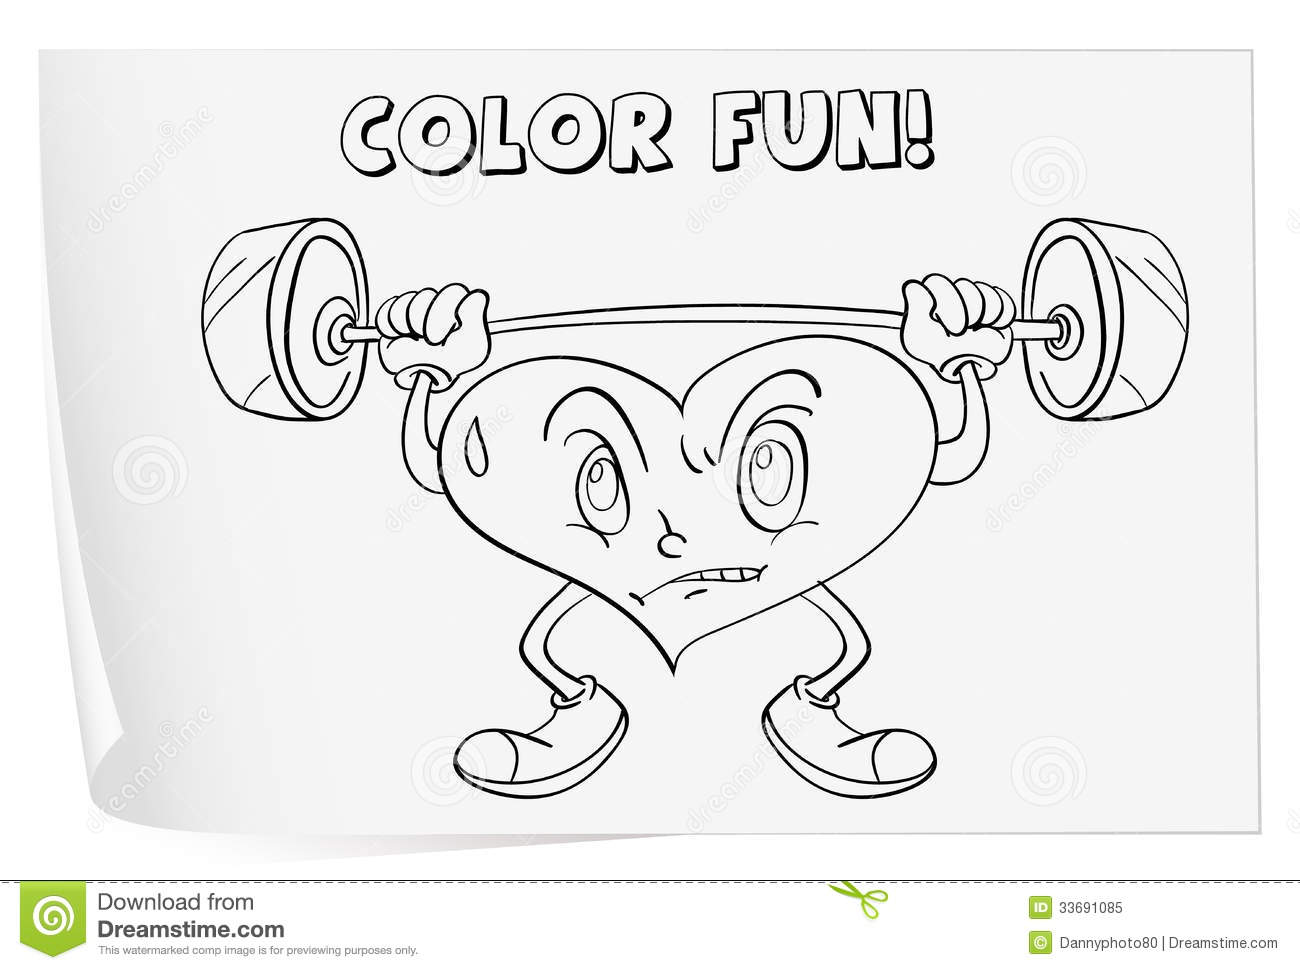 Coloring Worksheet Royalty Free Stock Photo